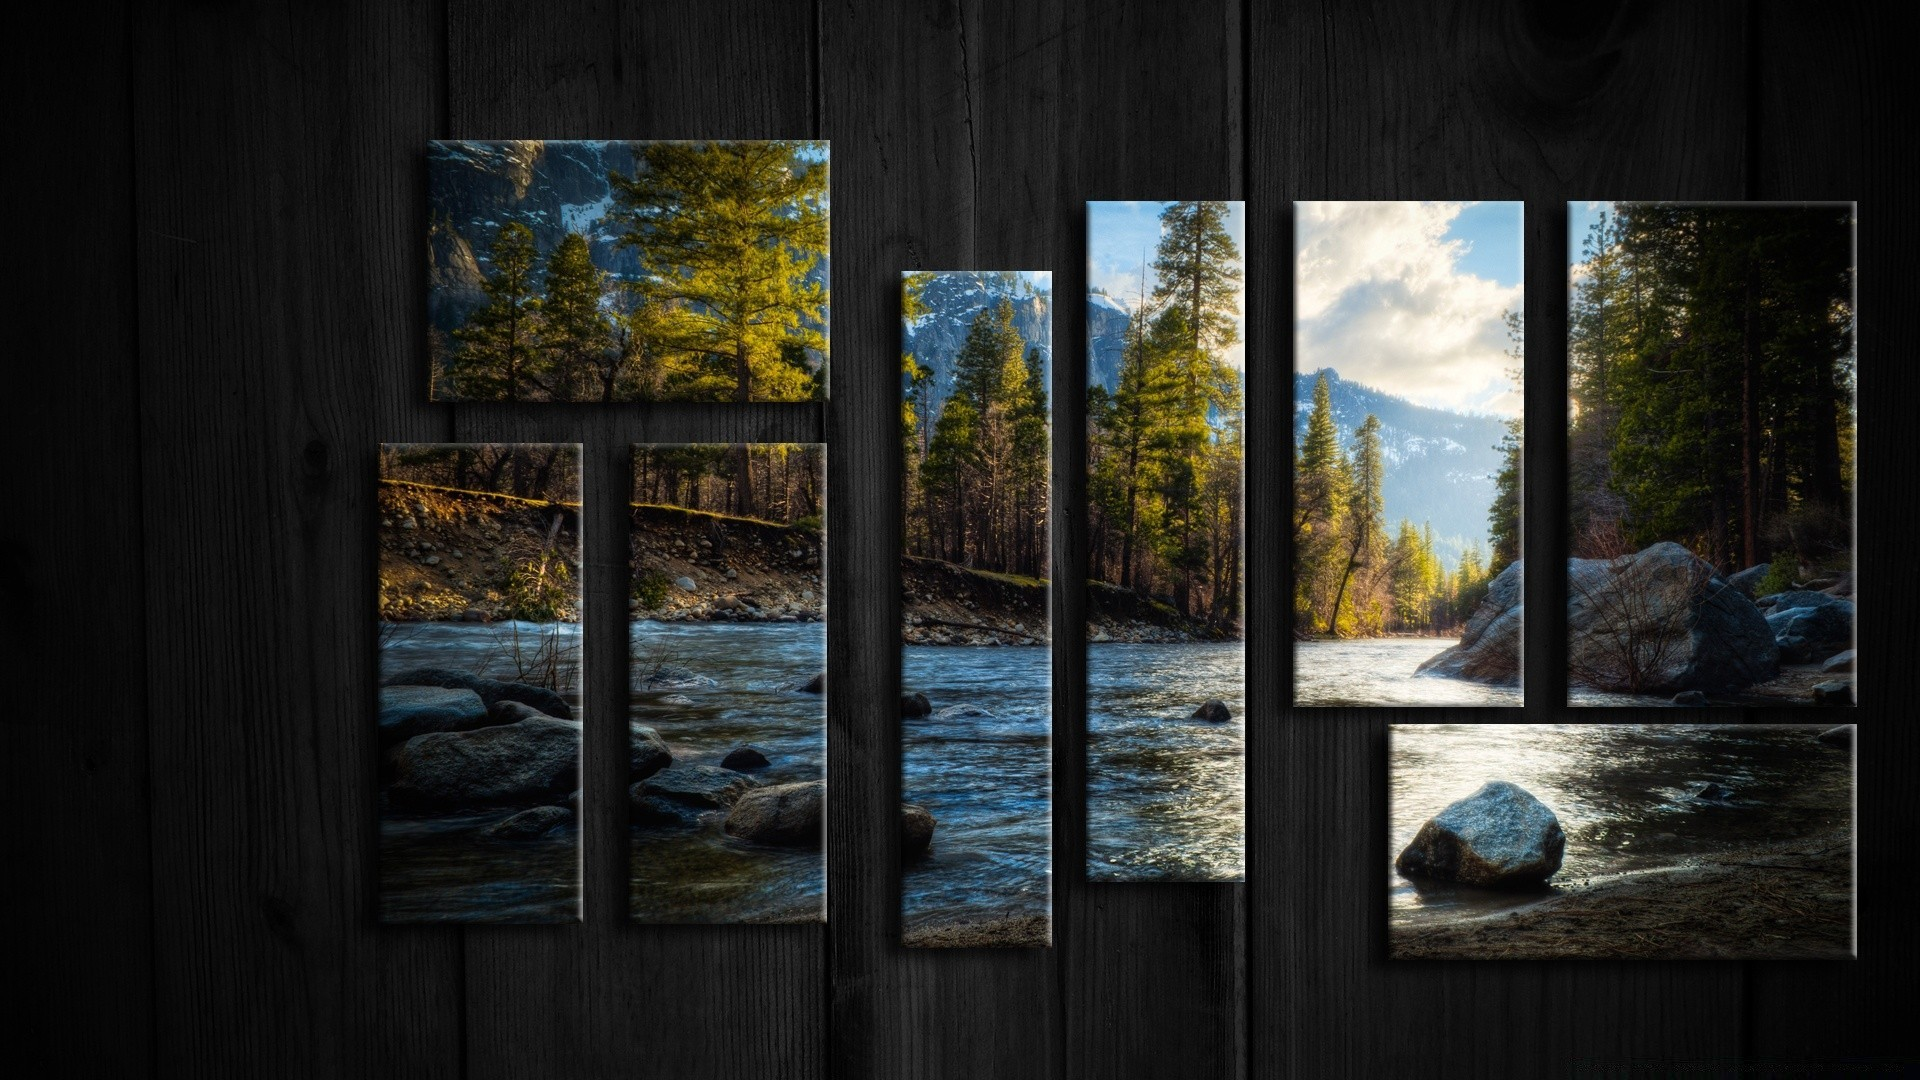 Framed Nature. Android wallpapers for free.